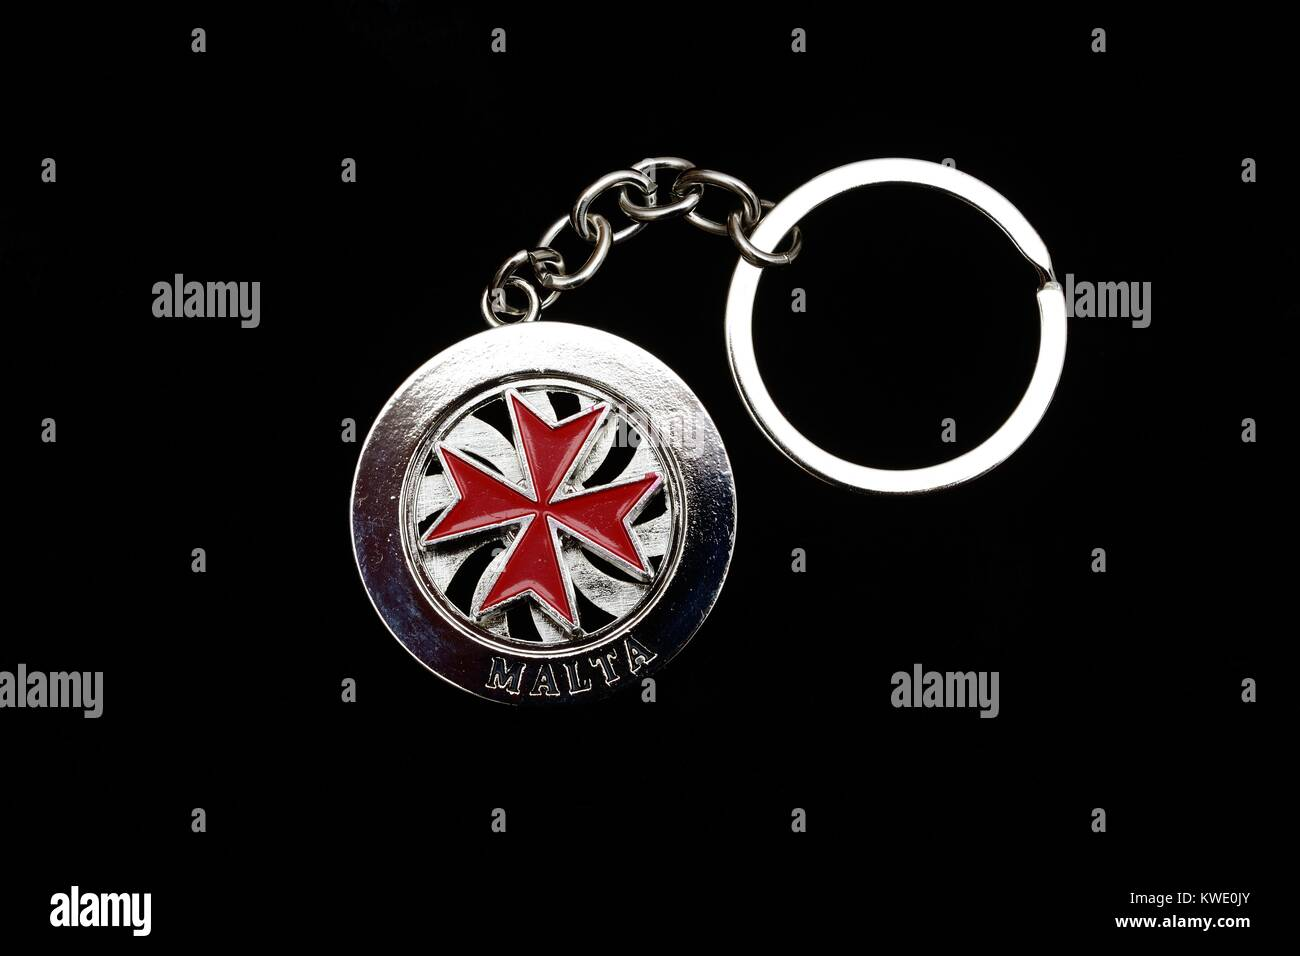 Circular Maltese key ring with a red cross in the centre which rotates against a black background - Stock Image